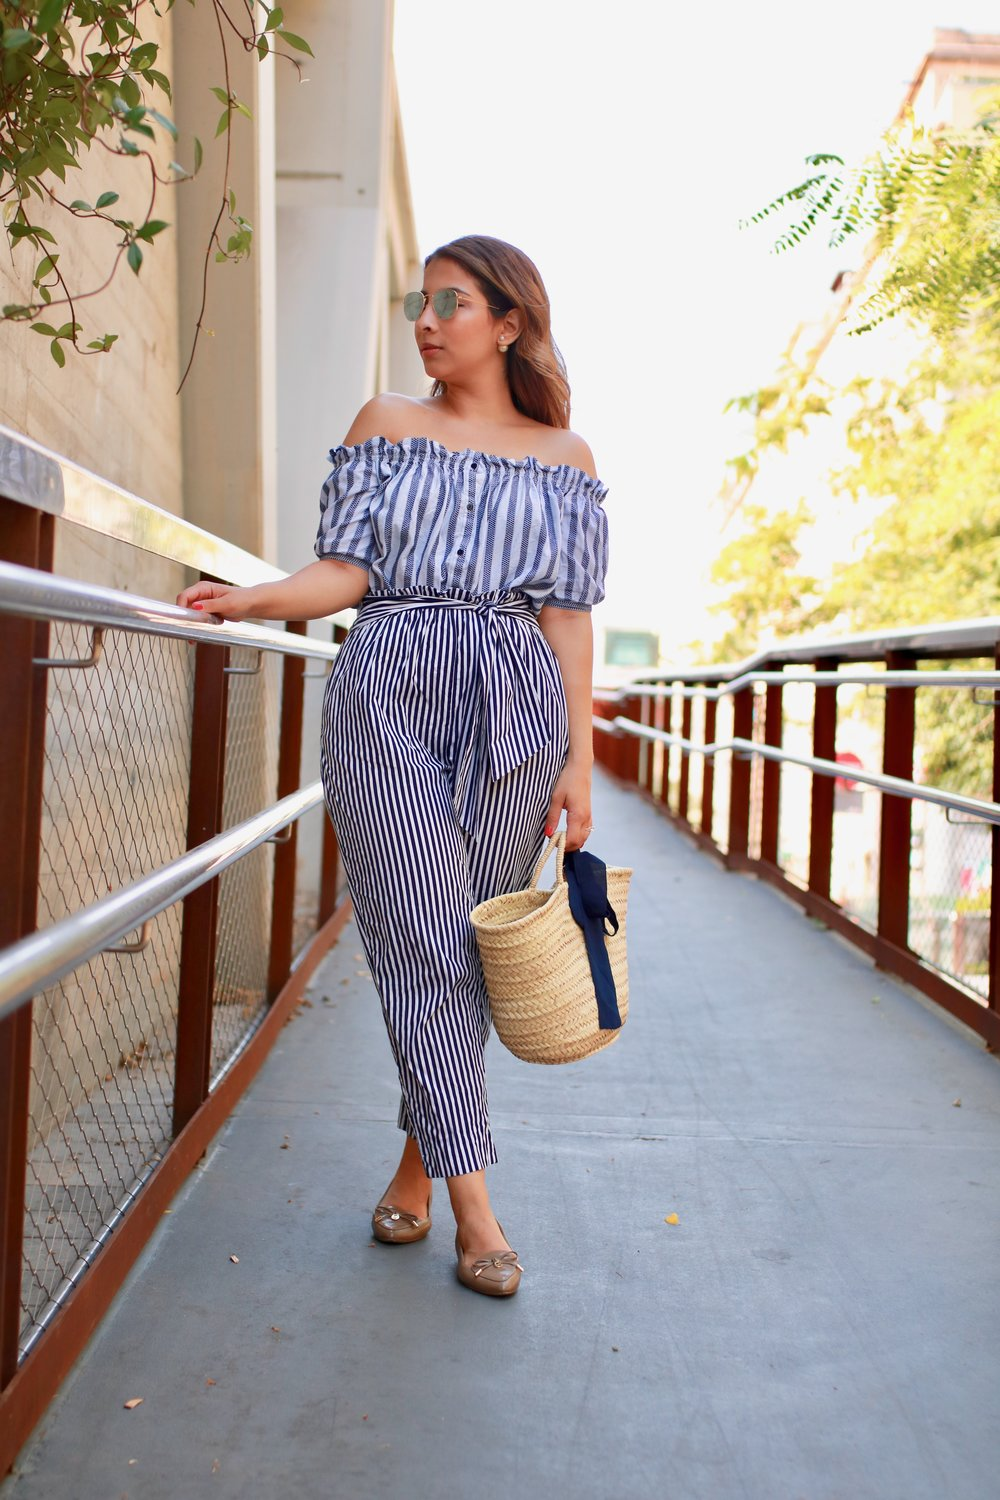 Mixing Stripes